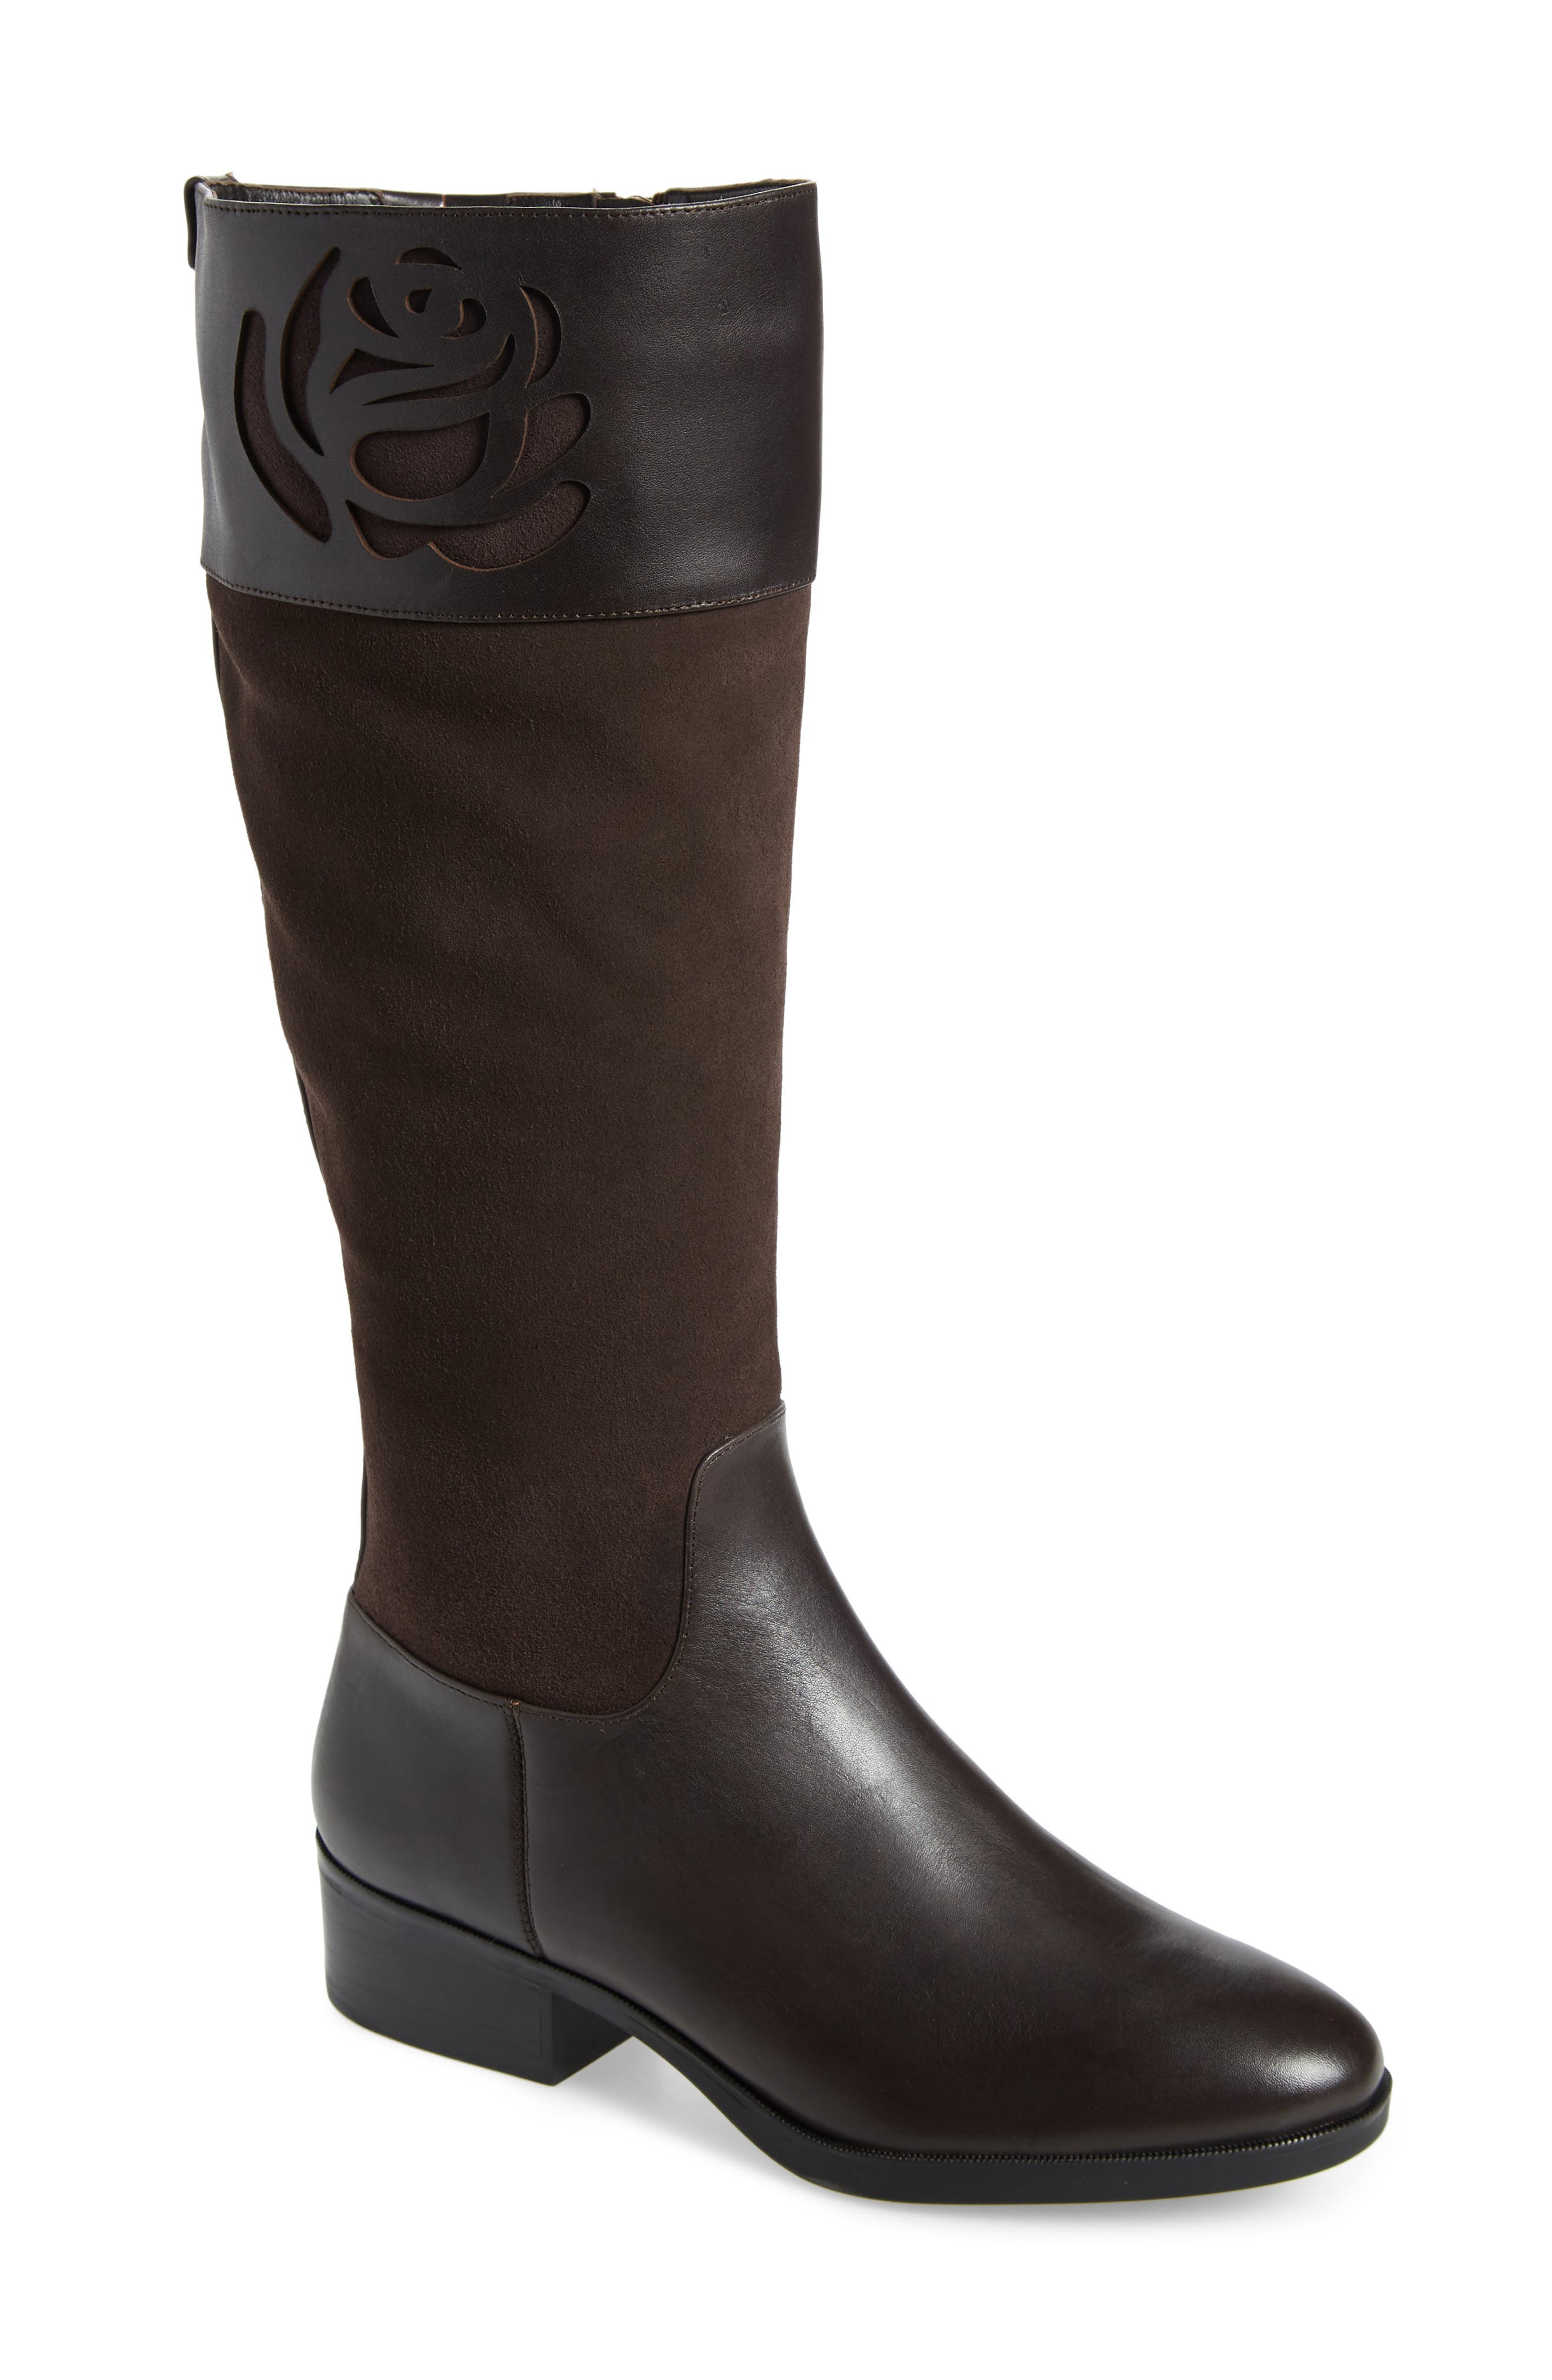 TARYN ROSE,                             Georgia Water Resistant Collection Boot,                             Main thumbnail 1, color,                             CHOCOLATE LEATHER/ SUEDE